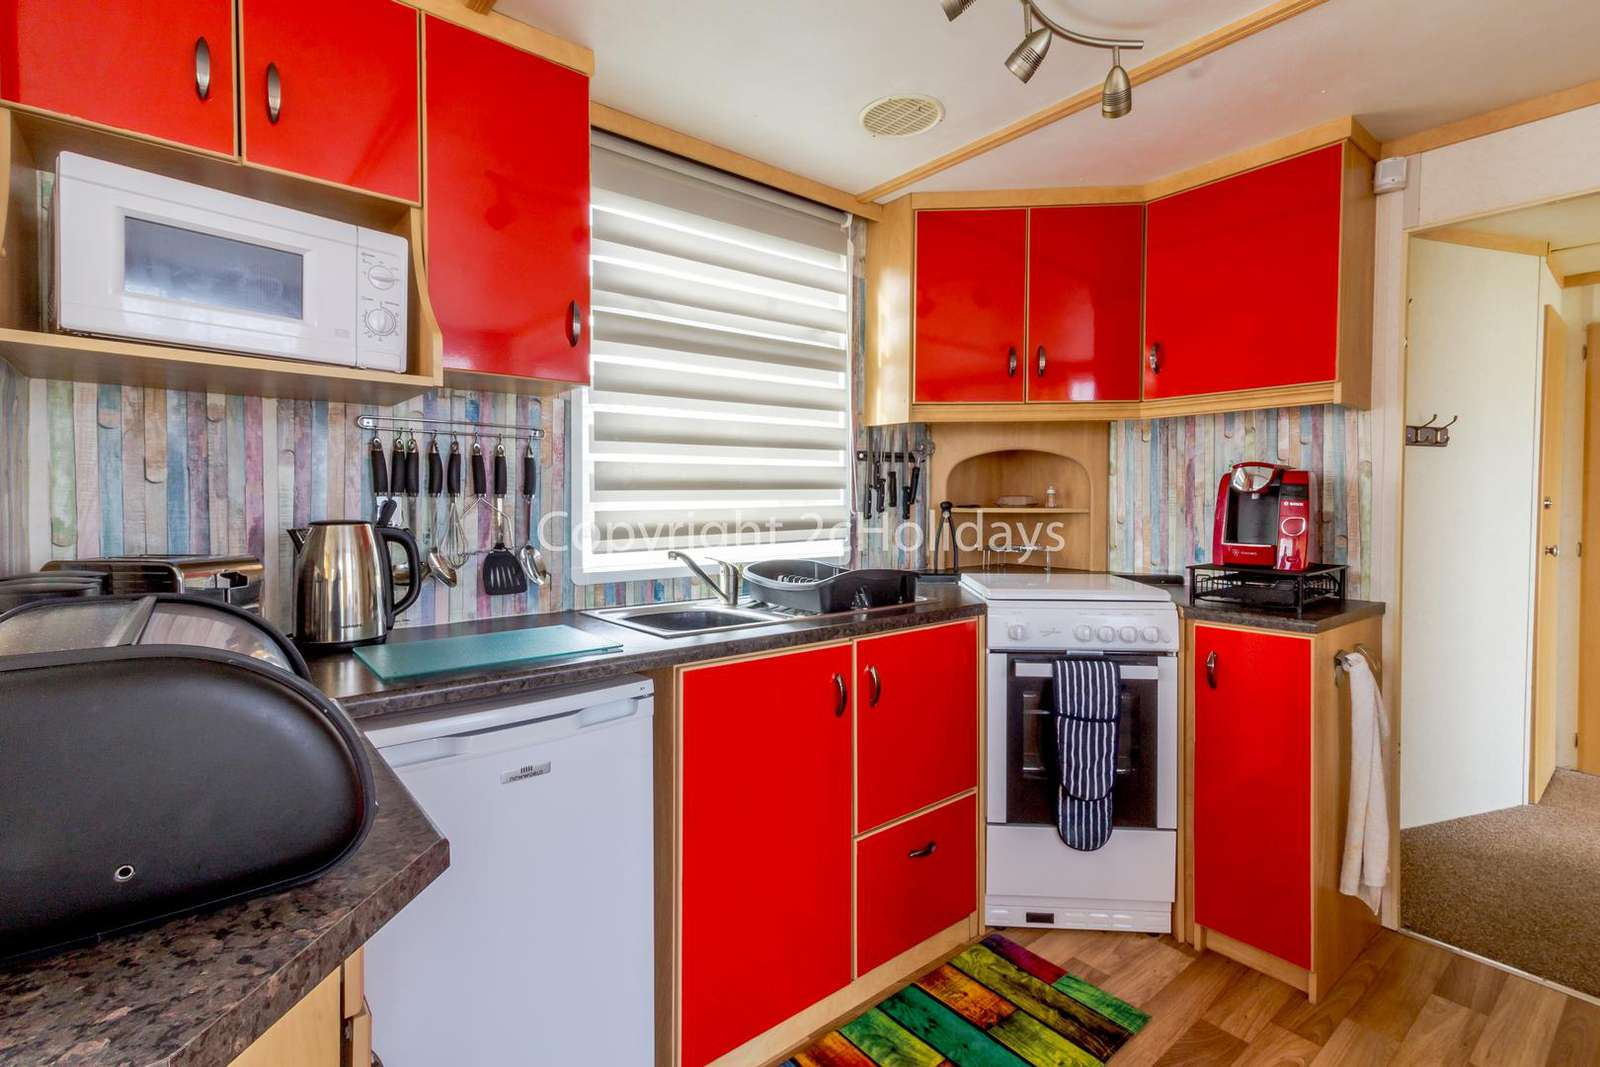 Modern kitchens with a full size oven/hob!